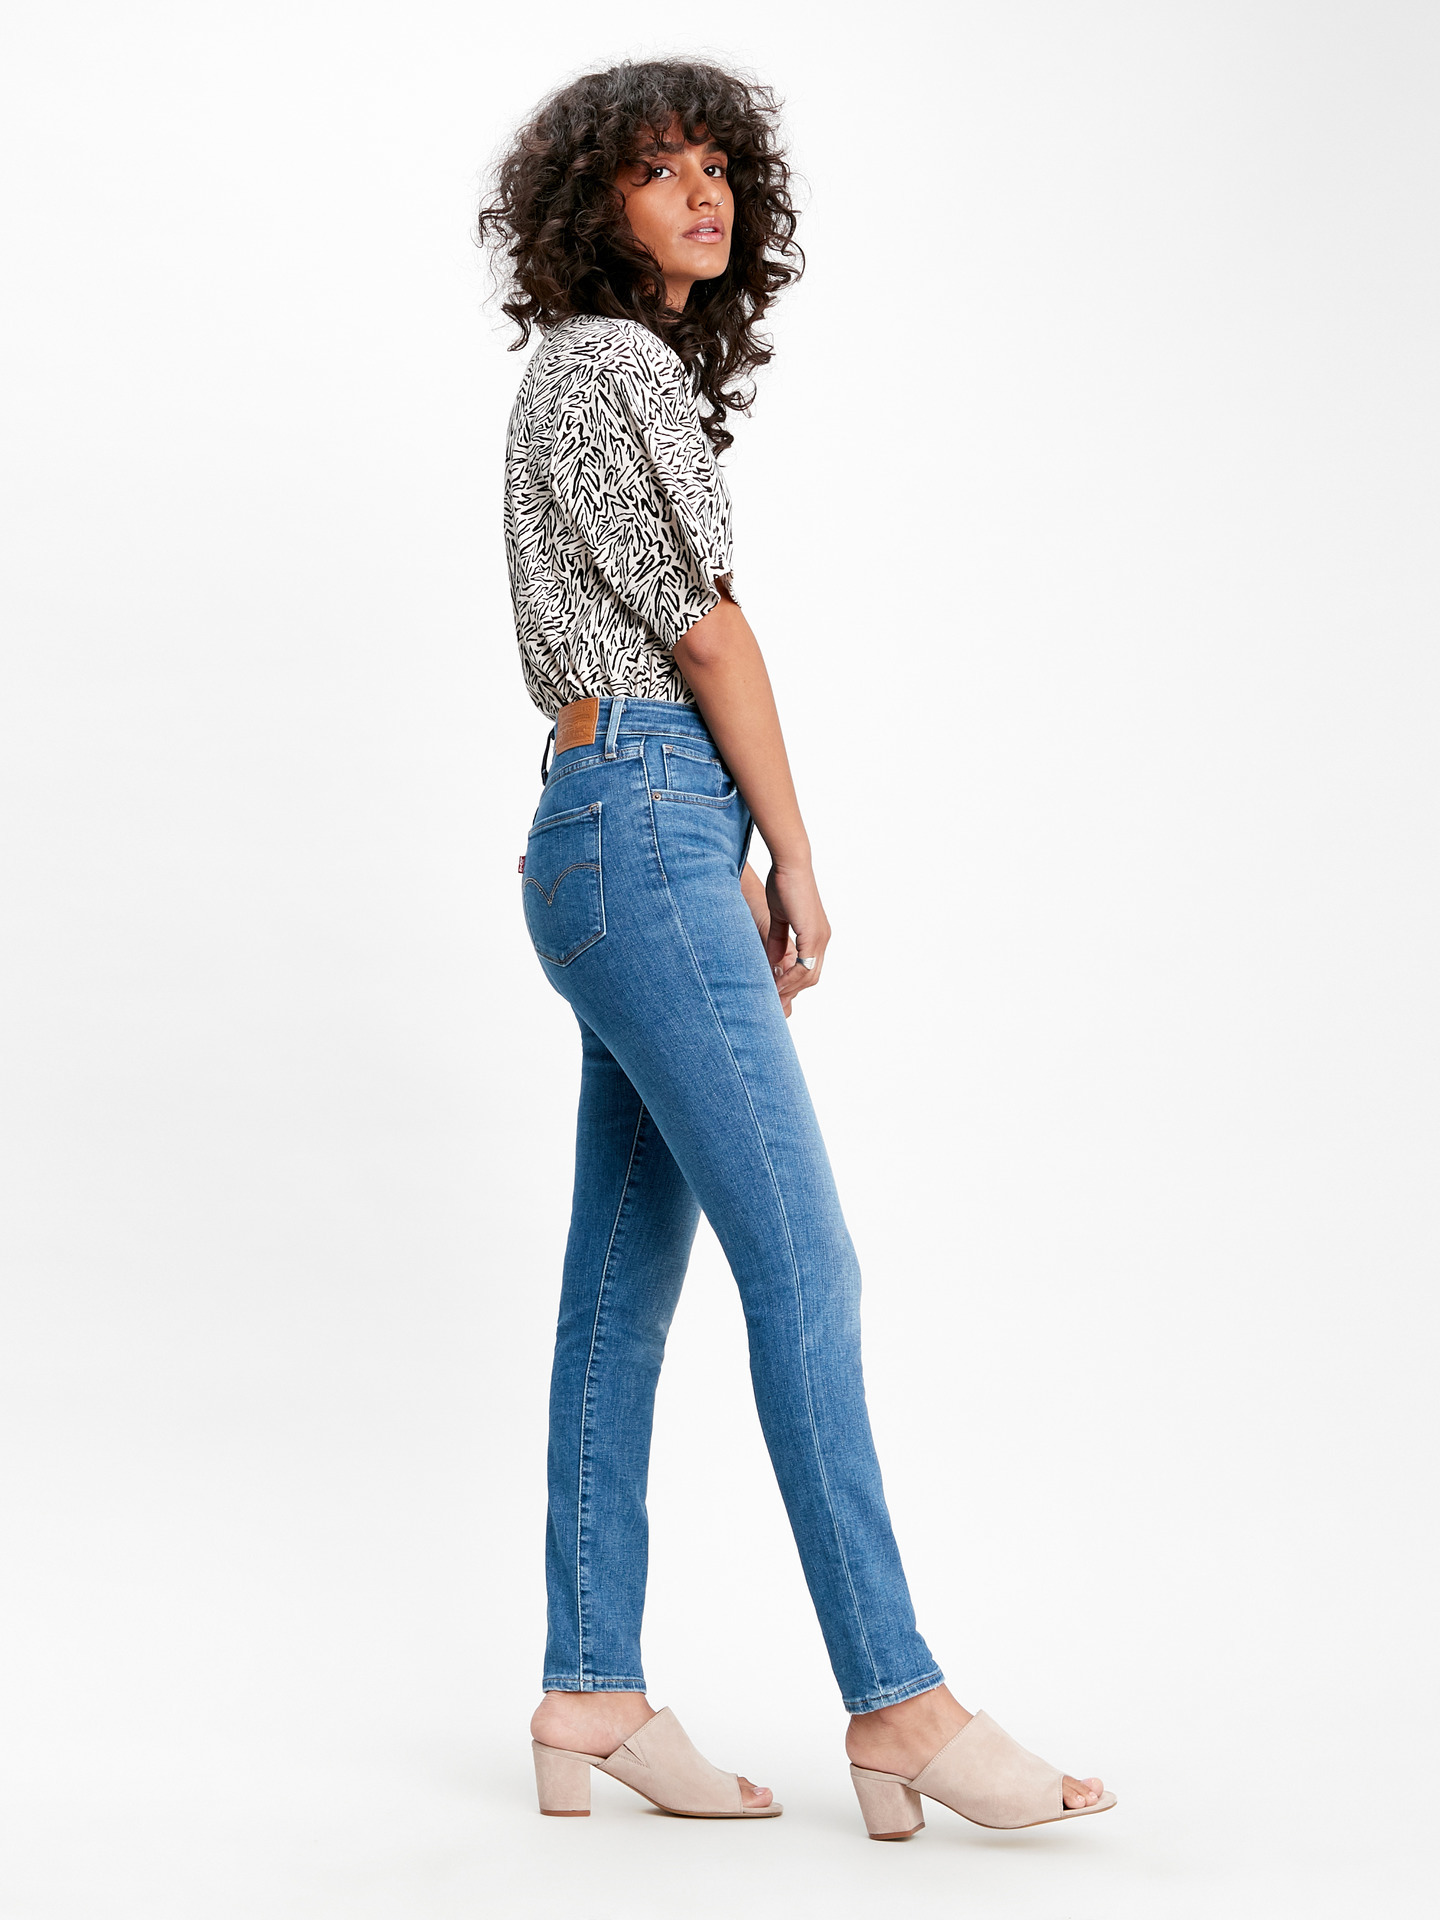 721™ High Rise Skinny Jeans Levi's® (2)